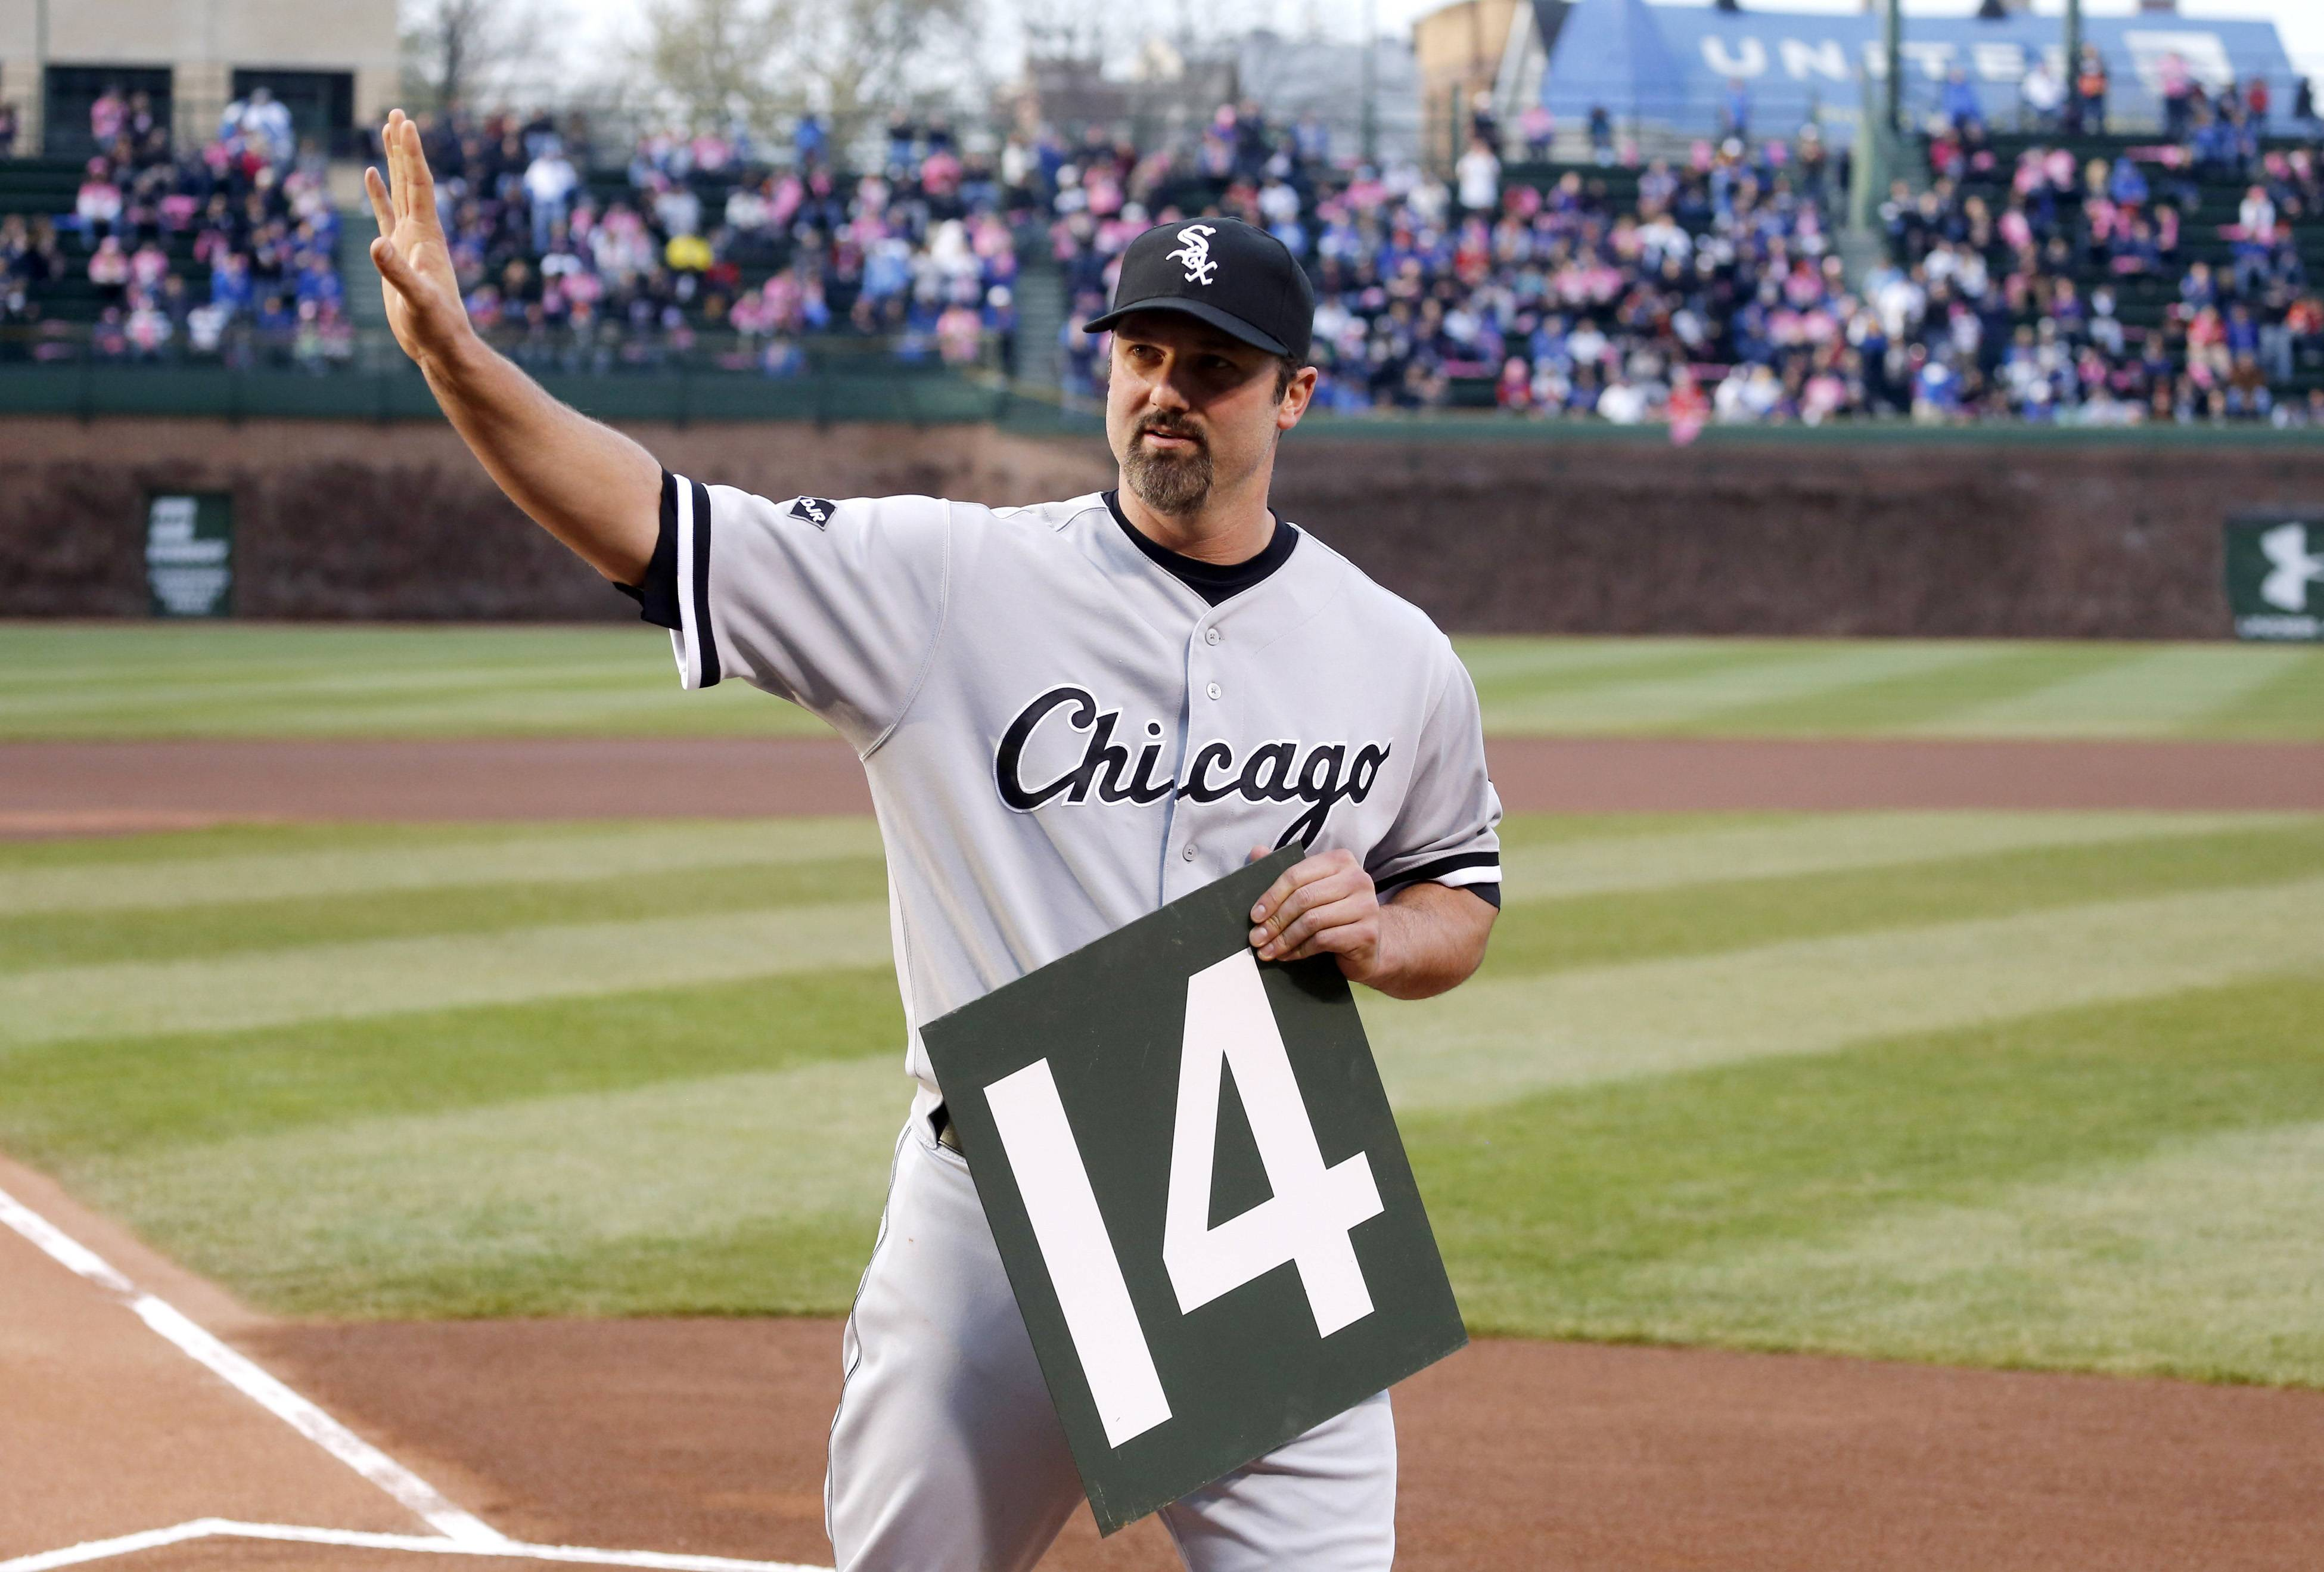 Chicago White Sox's Paul Konerko waves to the crowd after receiving a retirement gift from Chicago Cubs starting pitcher Jeff Samardzija of his number from the Wrigley Field scoreboard before a baseball game between the two teams Tuesday, May 6, 2014, in Chicago.